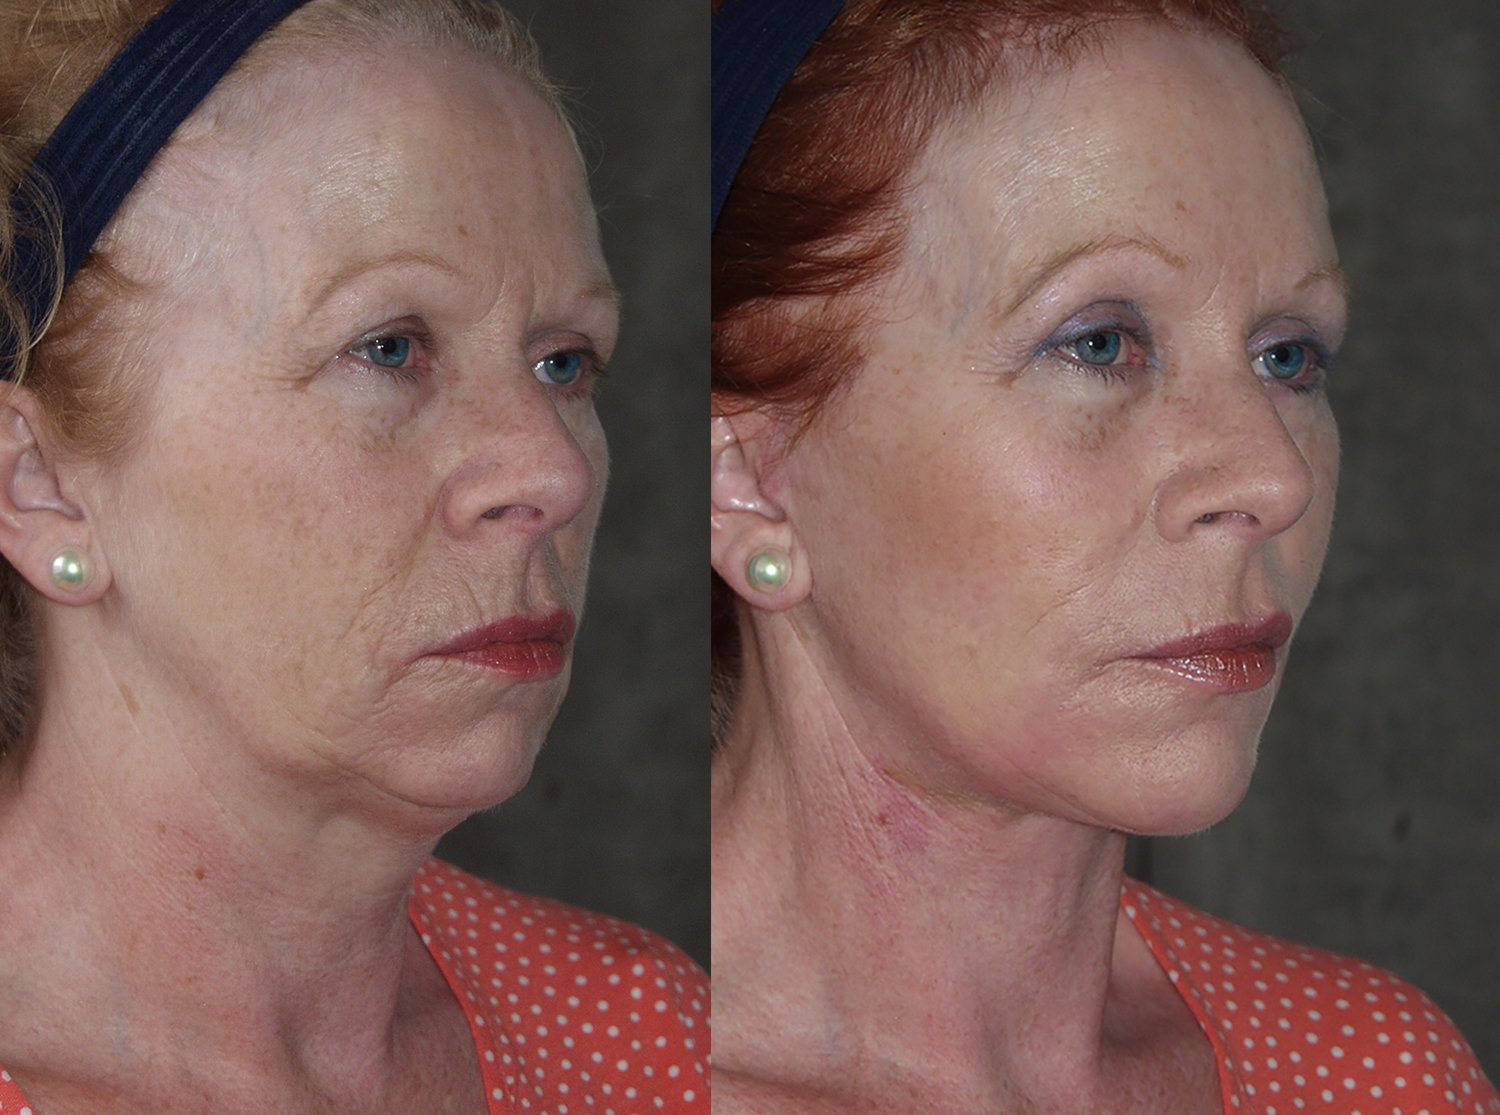 57-year-old facelift browlift upper & lower eyelids chin implant 6 months, oblique